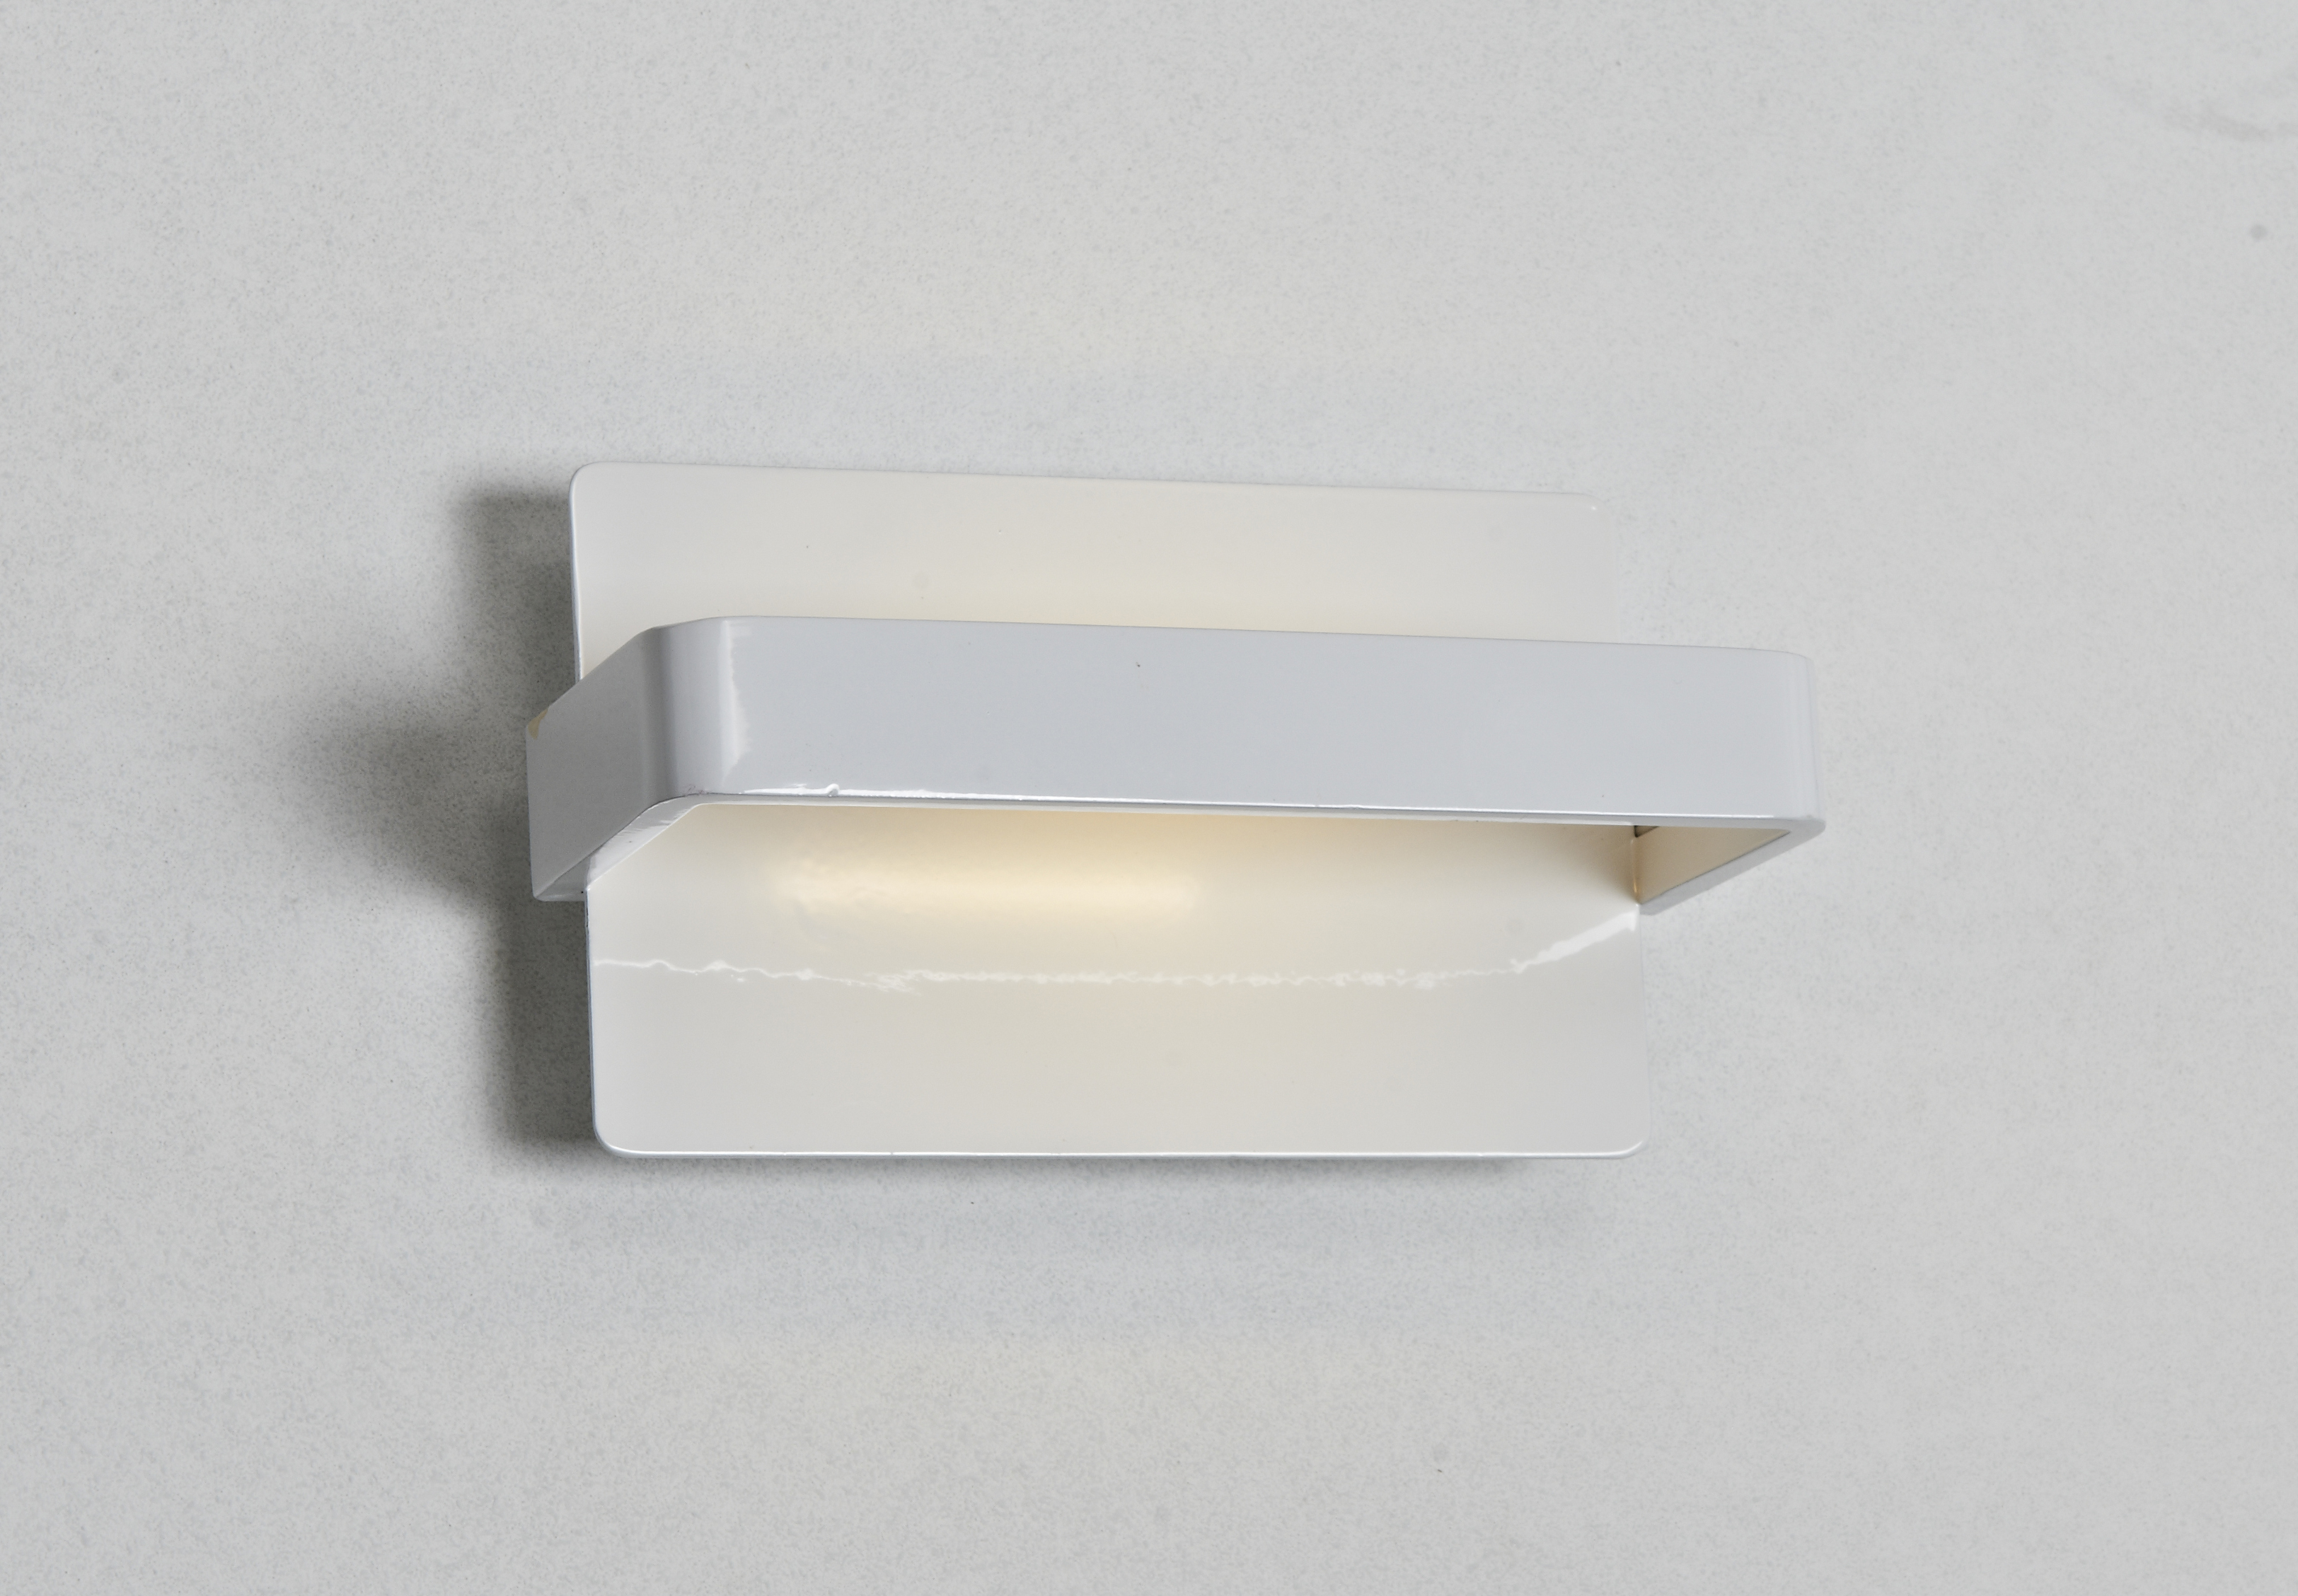 LED Wall Light<br/>ARR-11005-01-WH-LED